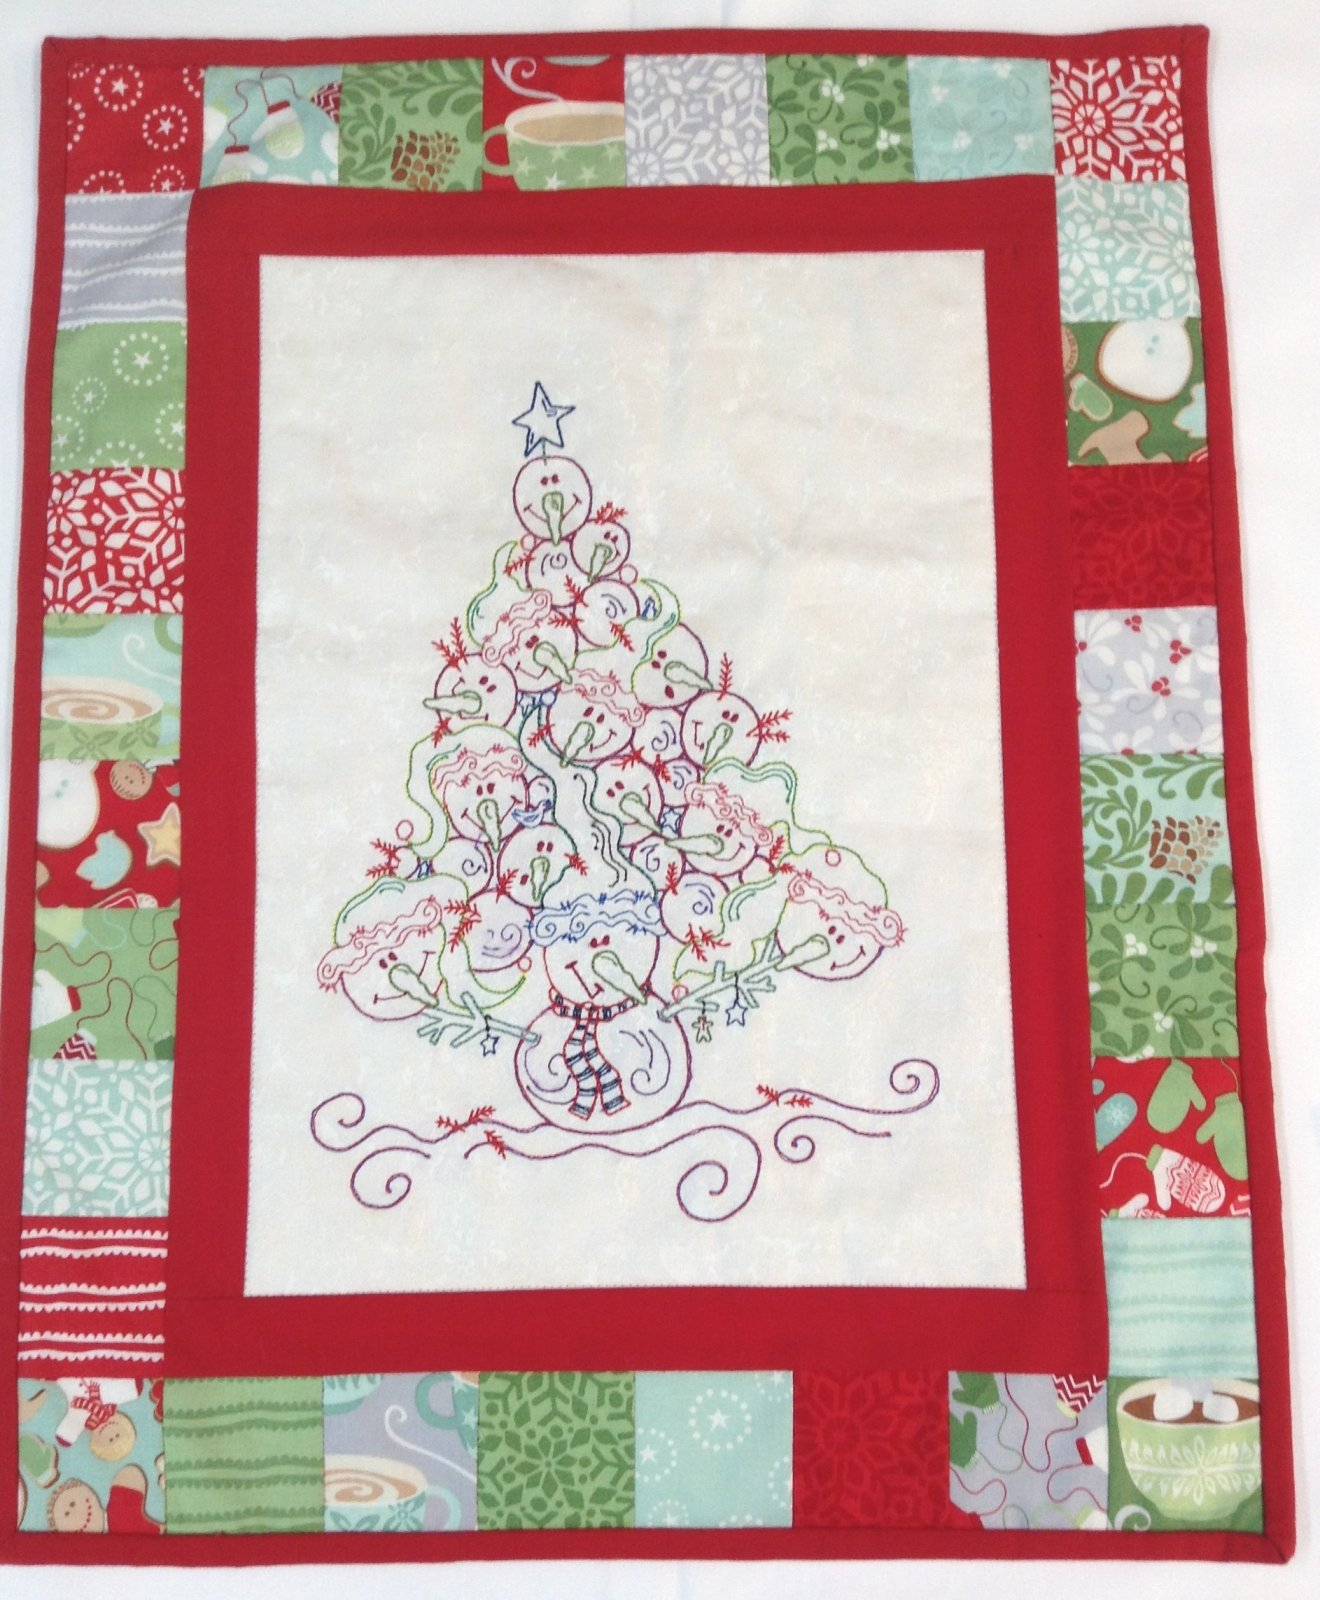 Wall Hanging for Sale:  Snowman Tree - Embroidered Center - 16 1/2 x 20 1/2